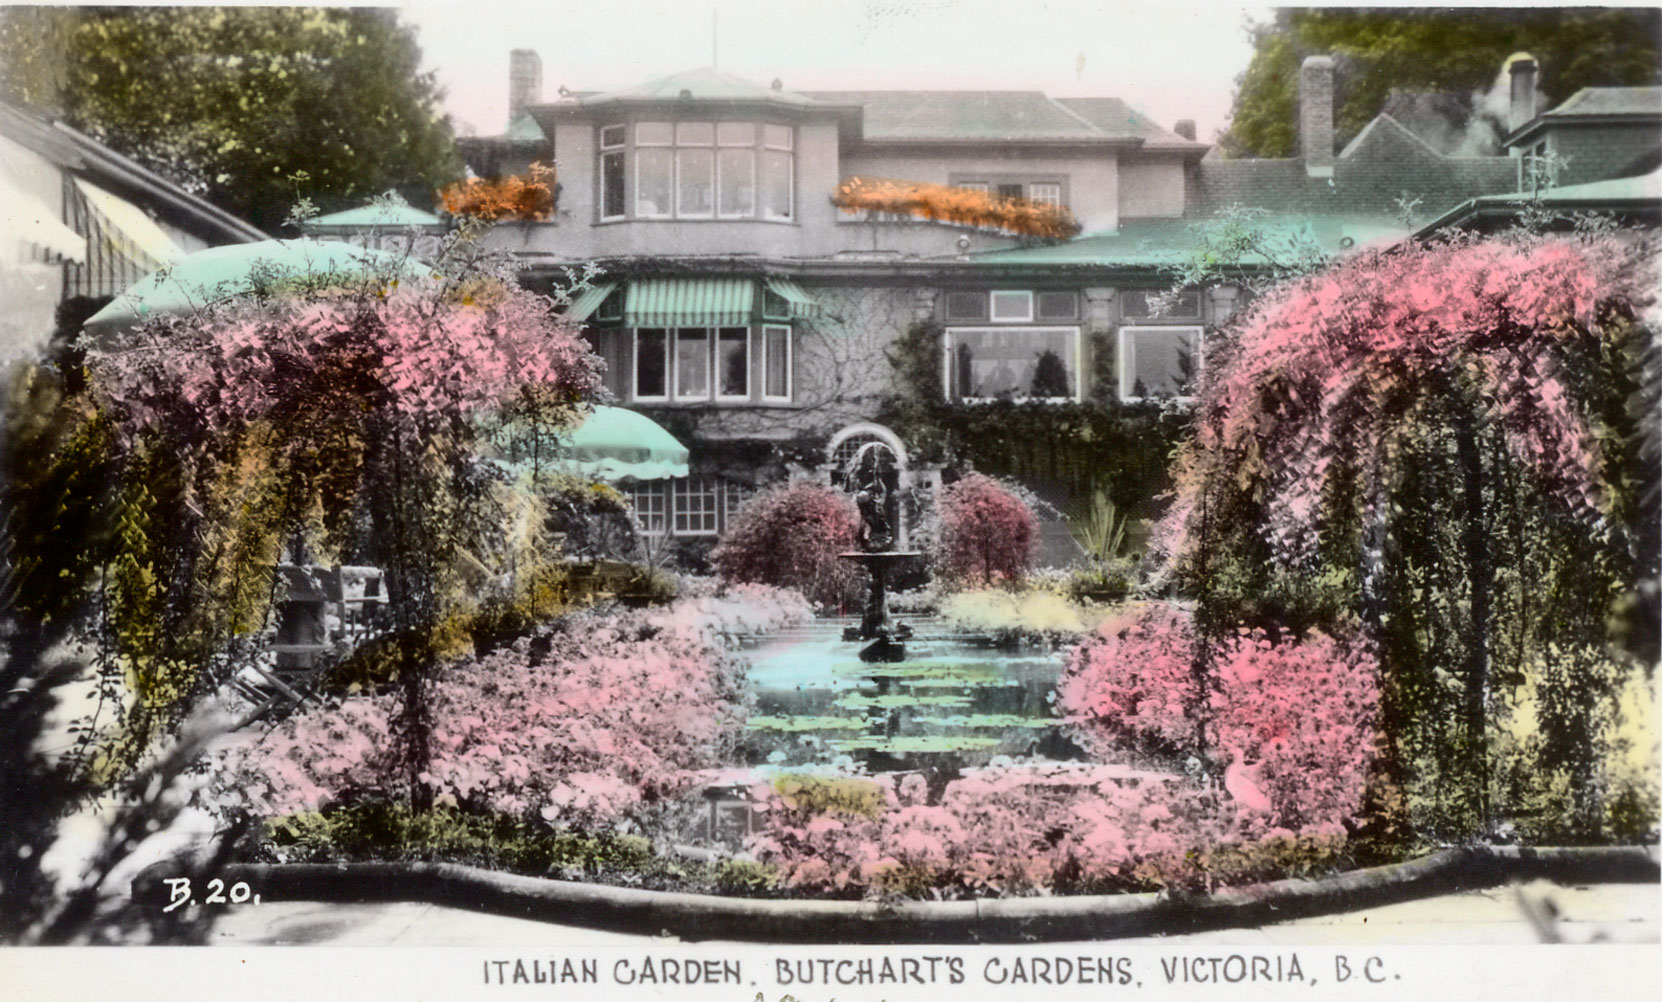 Postcard, dated 1944, showing the Italian Garden and Benvenuto (Author's collection)